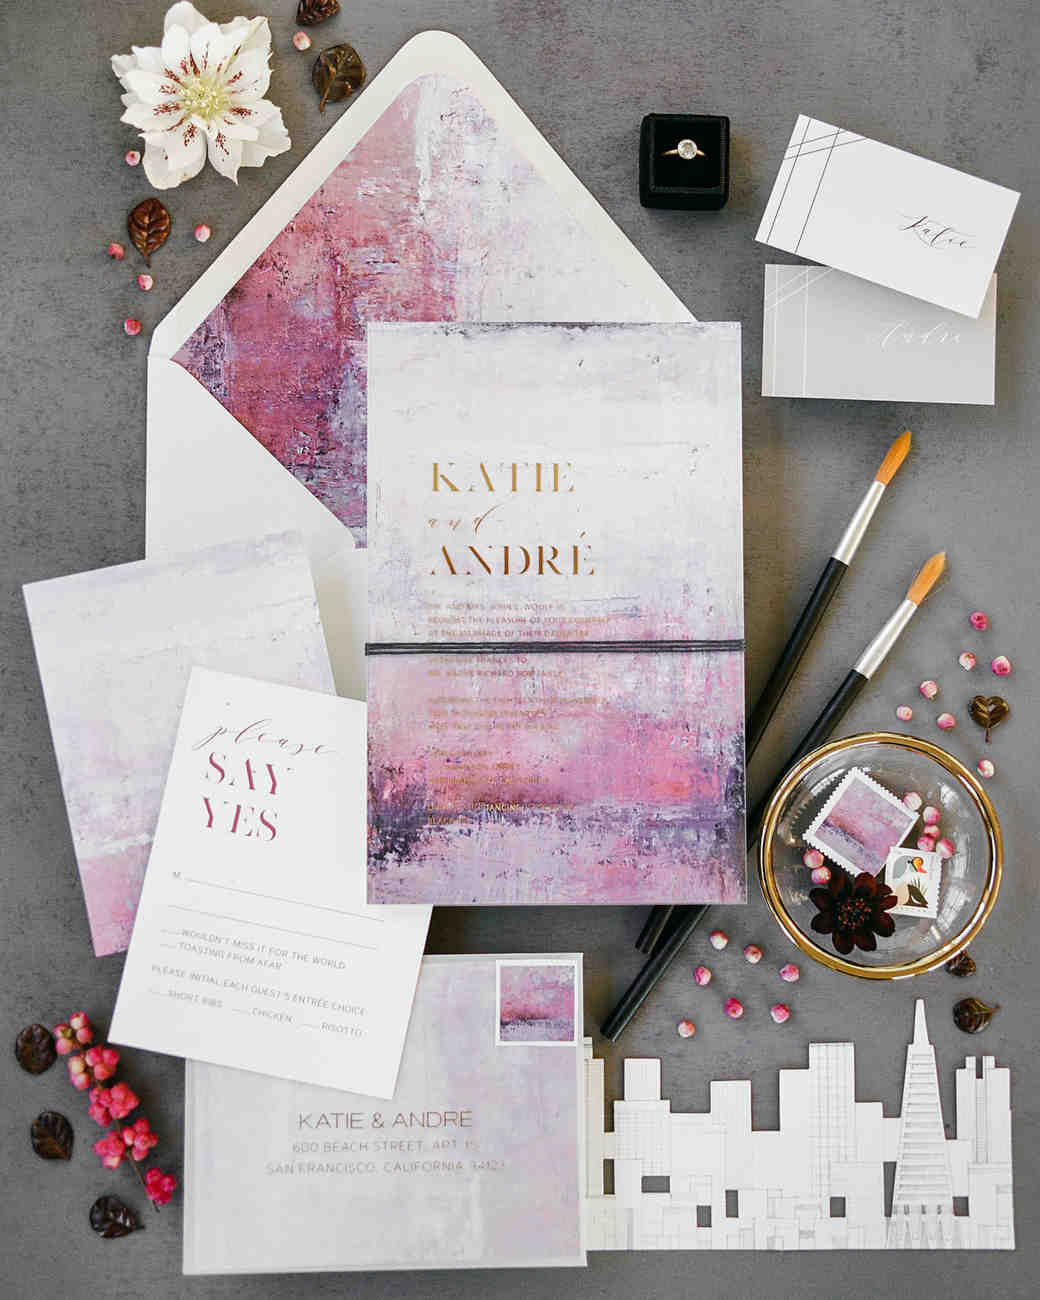 katie andre wedding invitation stationery suite